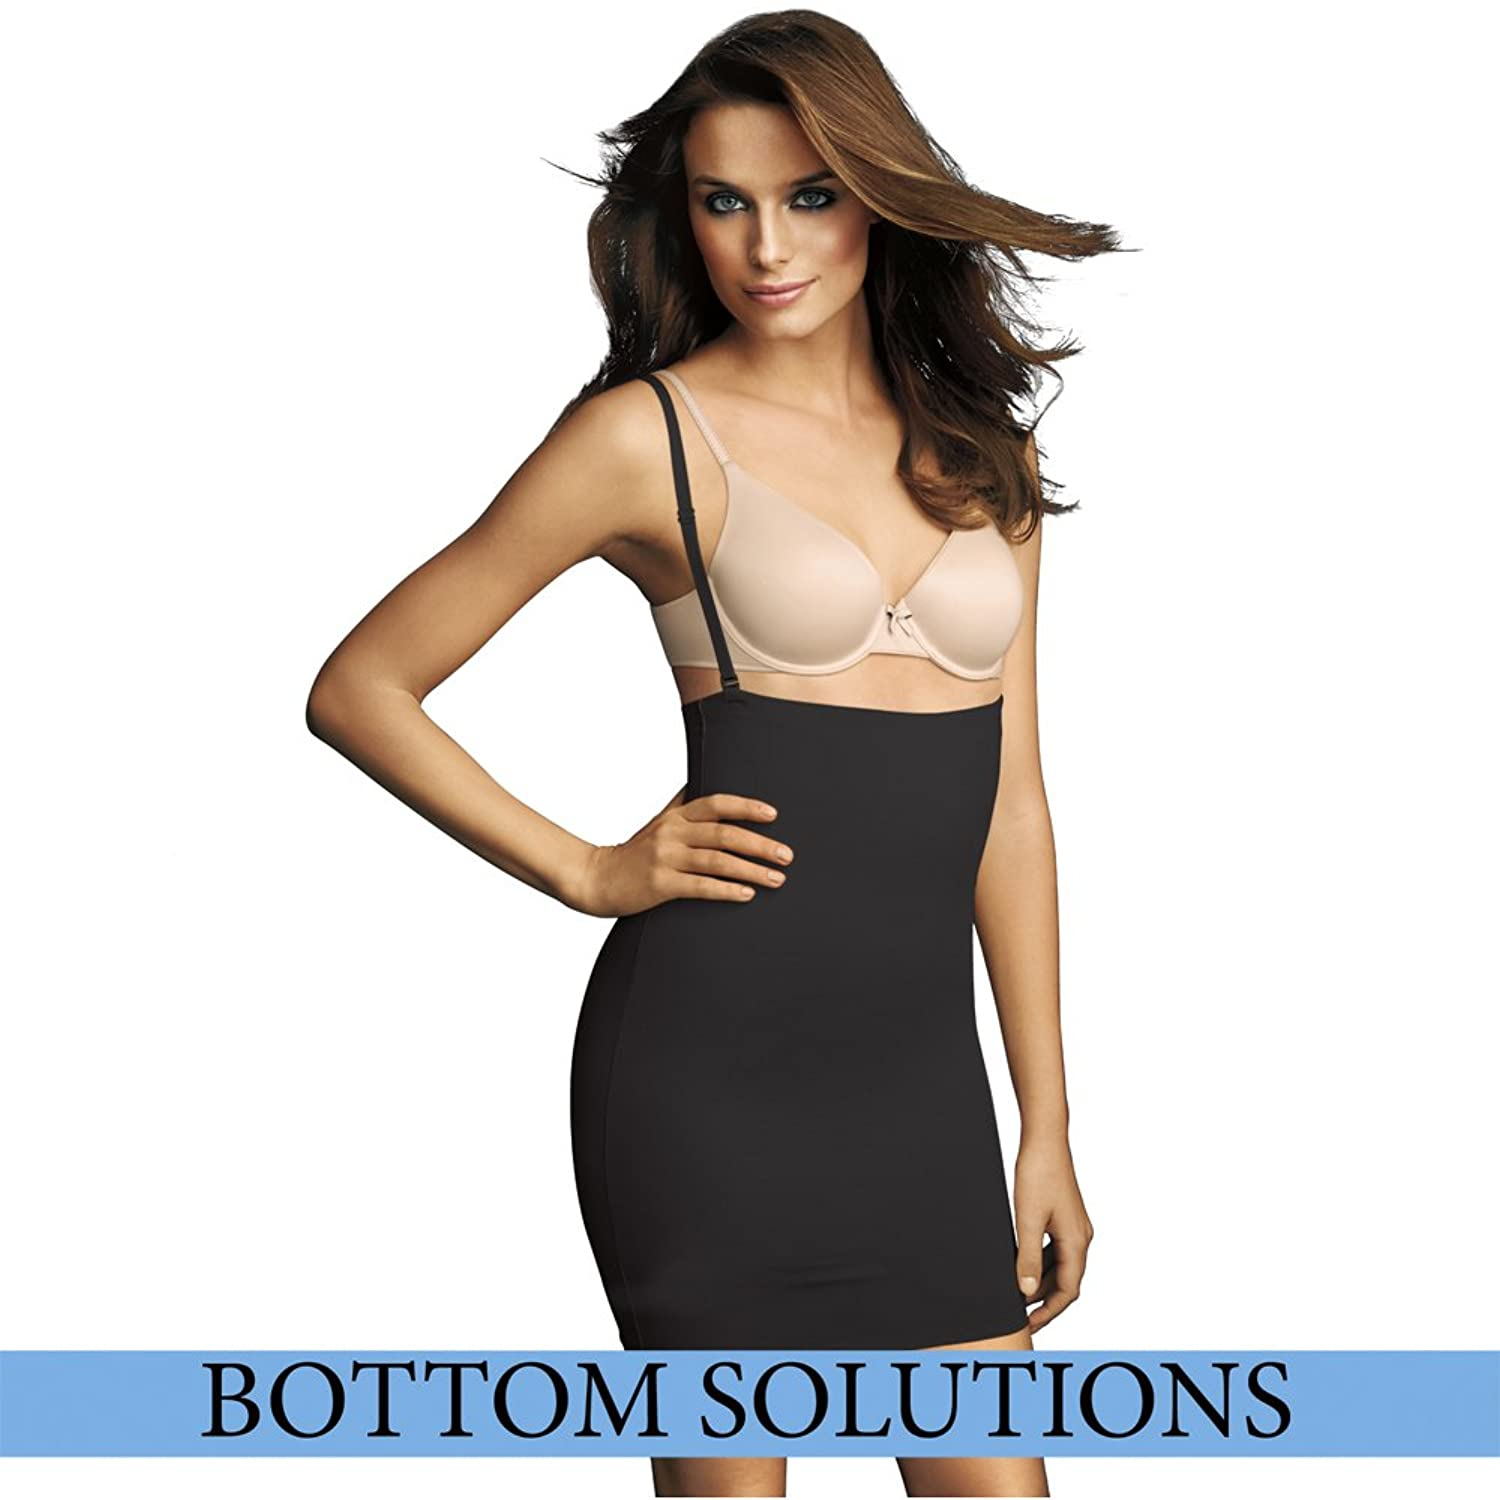 Outlet Choice Lowest Price Womens Comfort Devotion High Waisted Shaping Half Slip Maidenform Sale Exclusive ybAu2